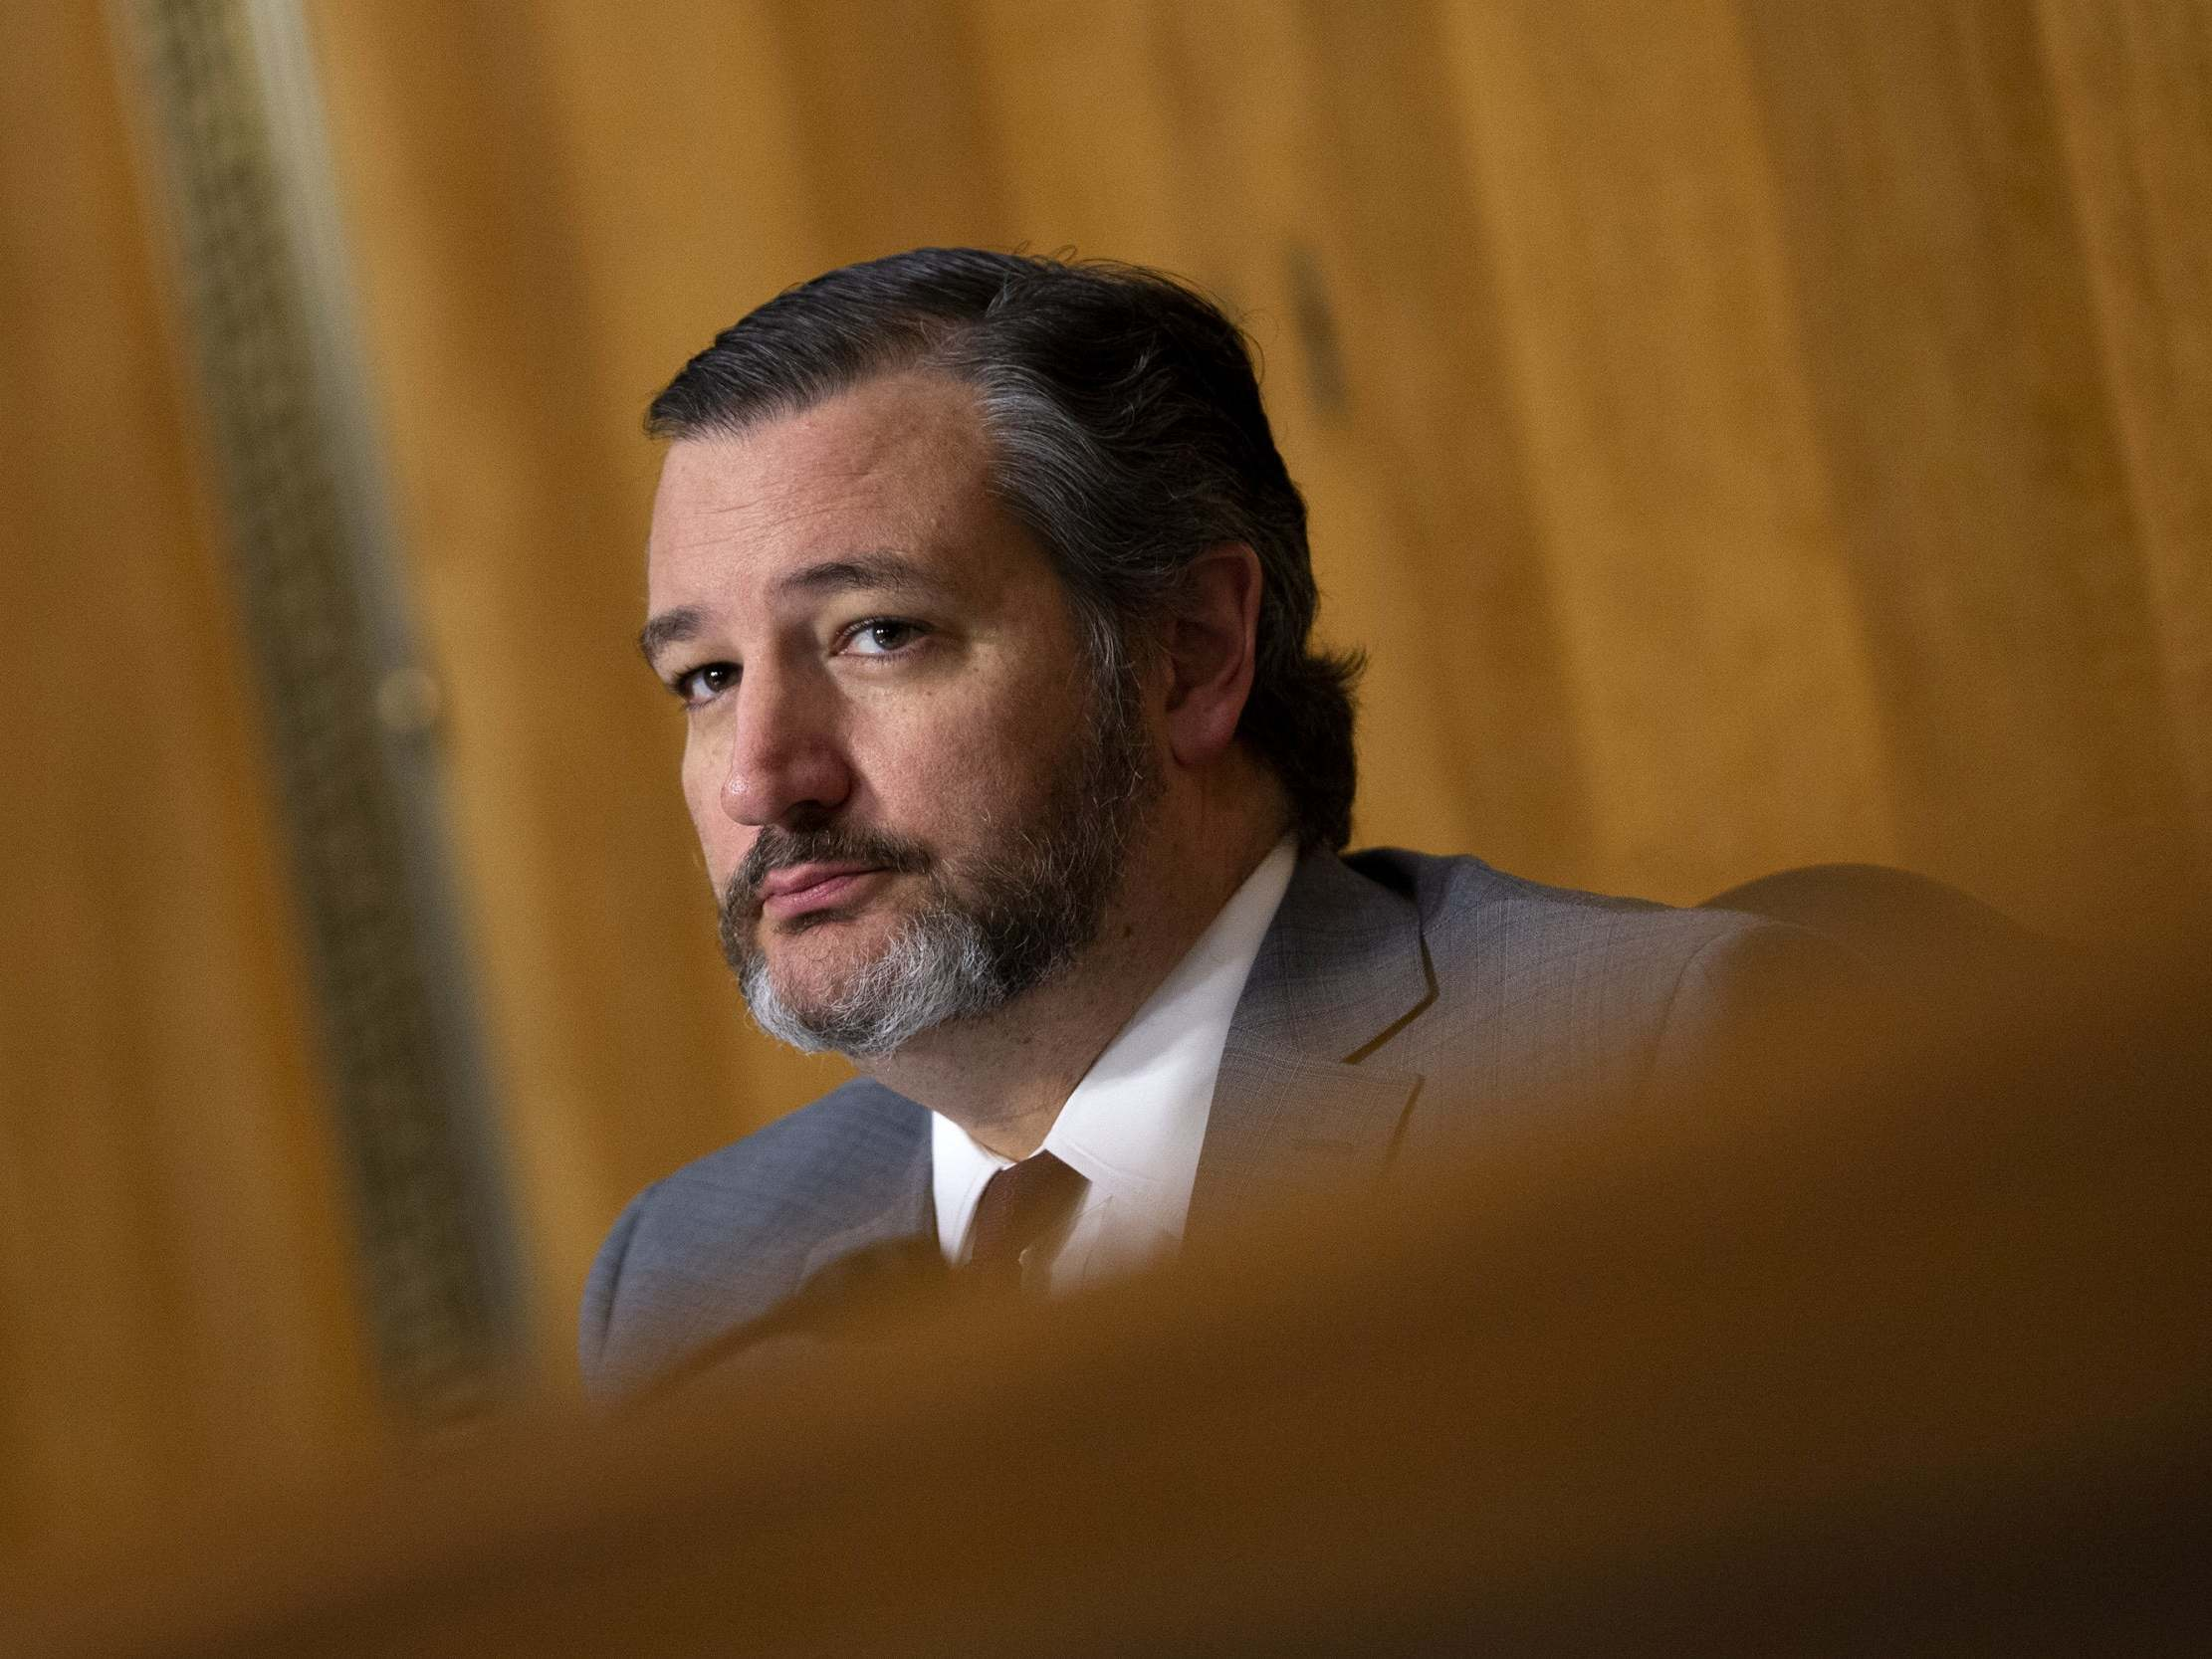 Ted Cruz unwittingly makes himself pro-choice with outrage over vasectomy bill - independent